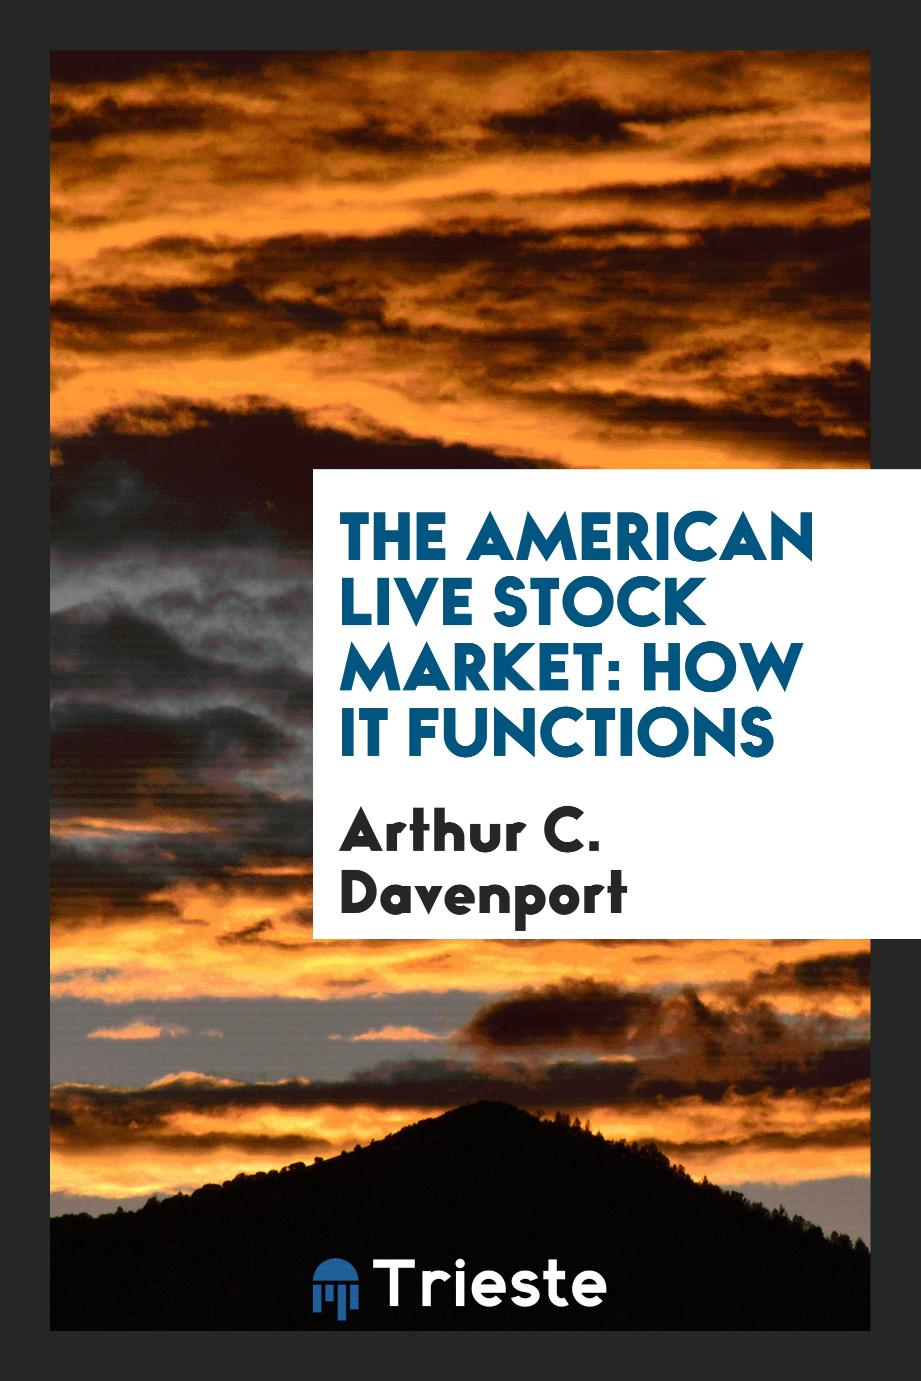 The American Live Stock Market: How it Functions